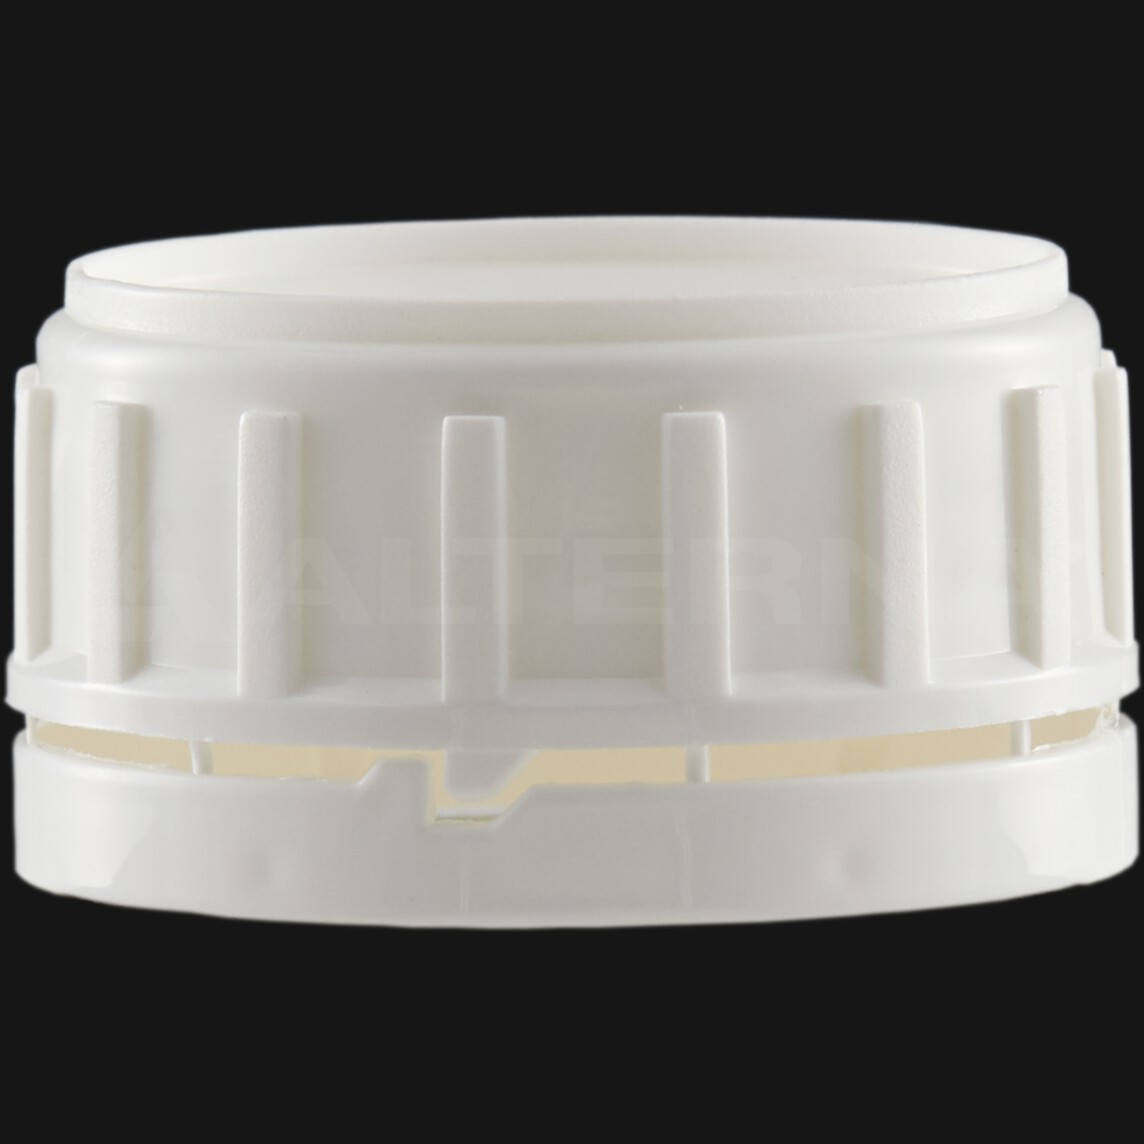 50 mm Foam Seal Secure Cap